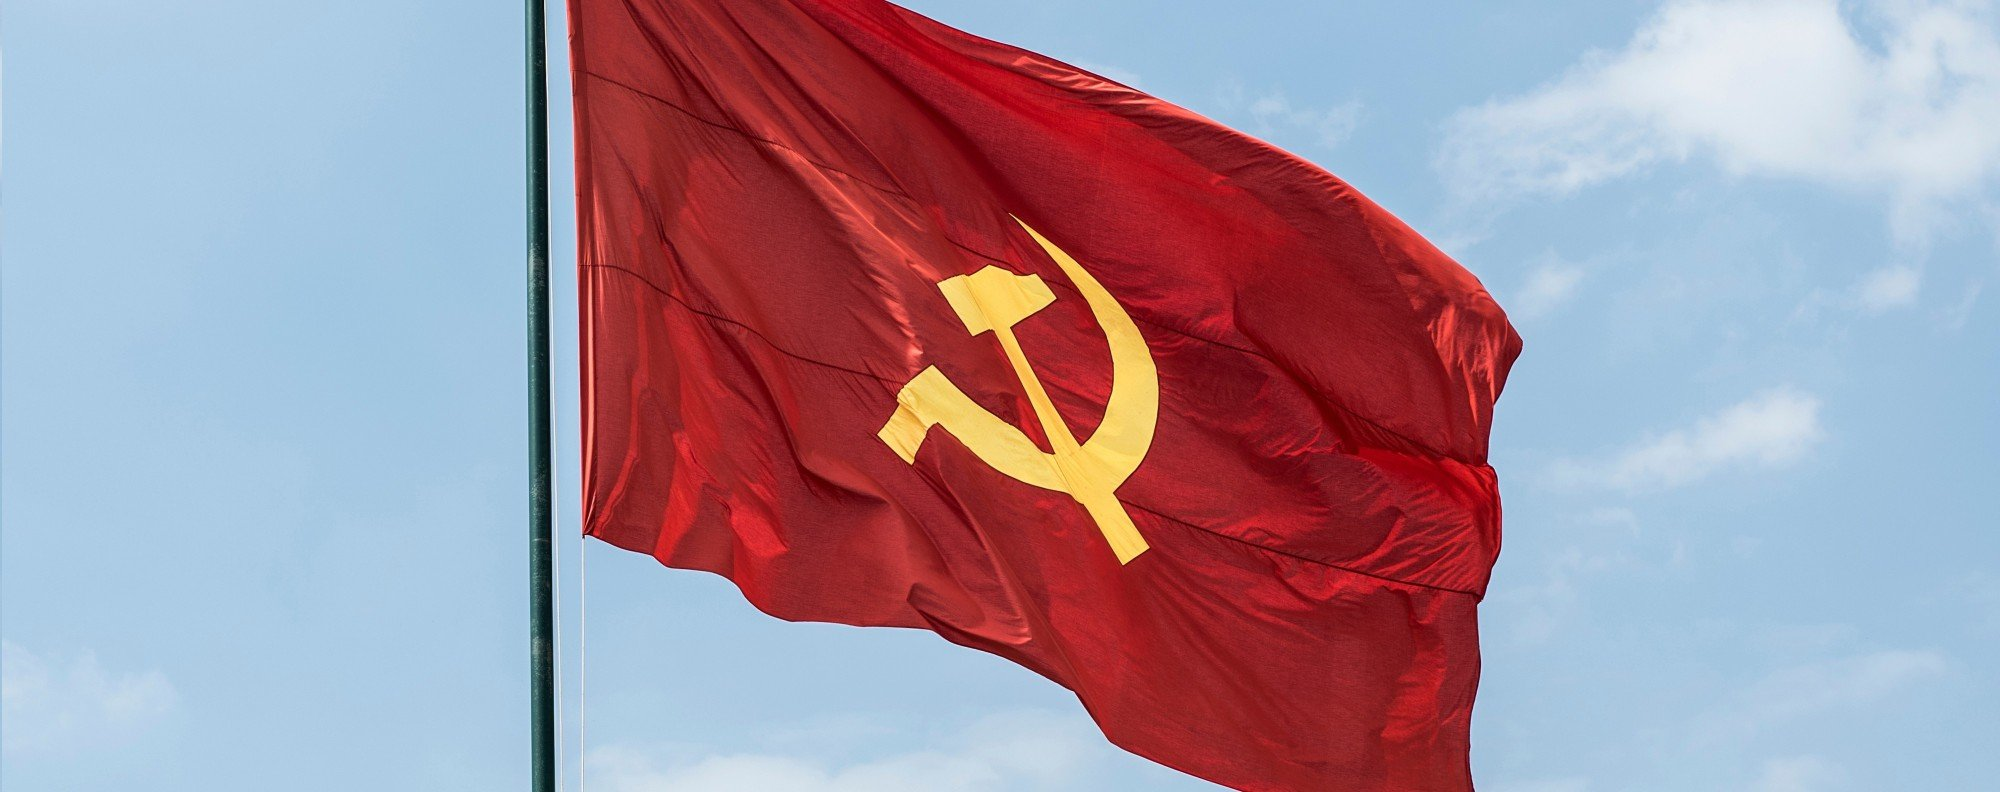 A hammer and sickle flag flies in the wind.